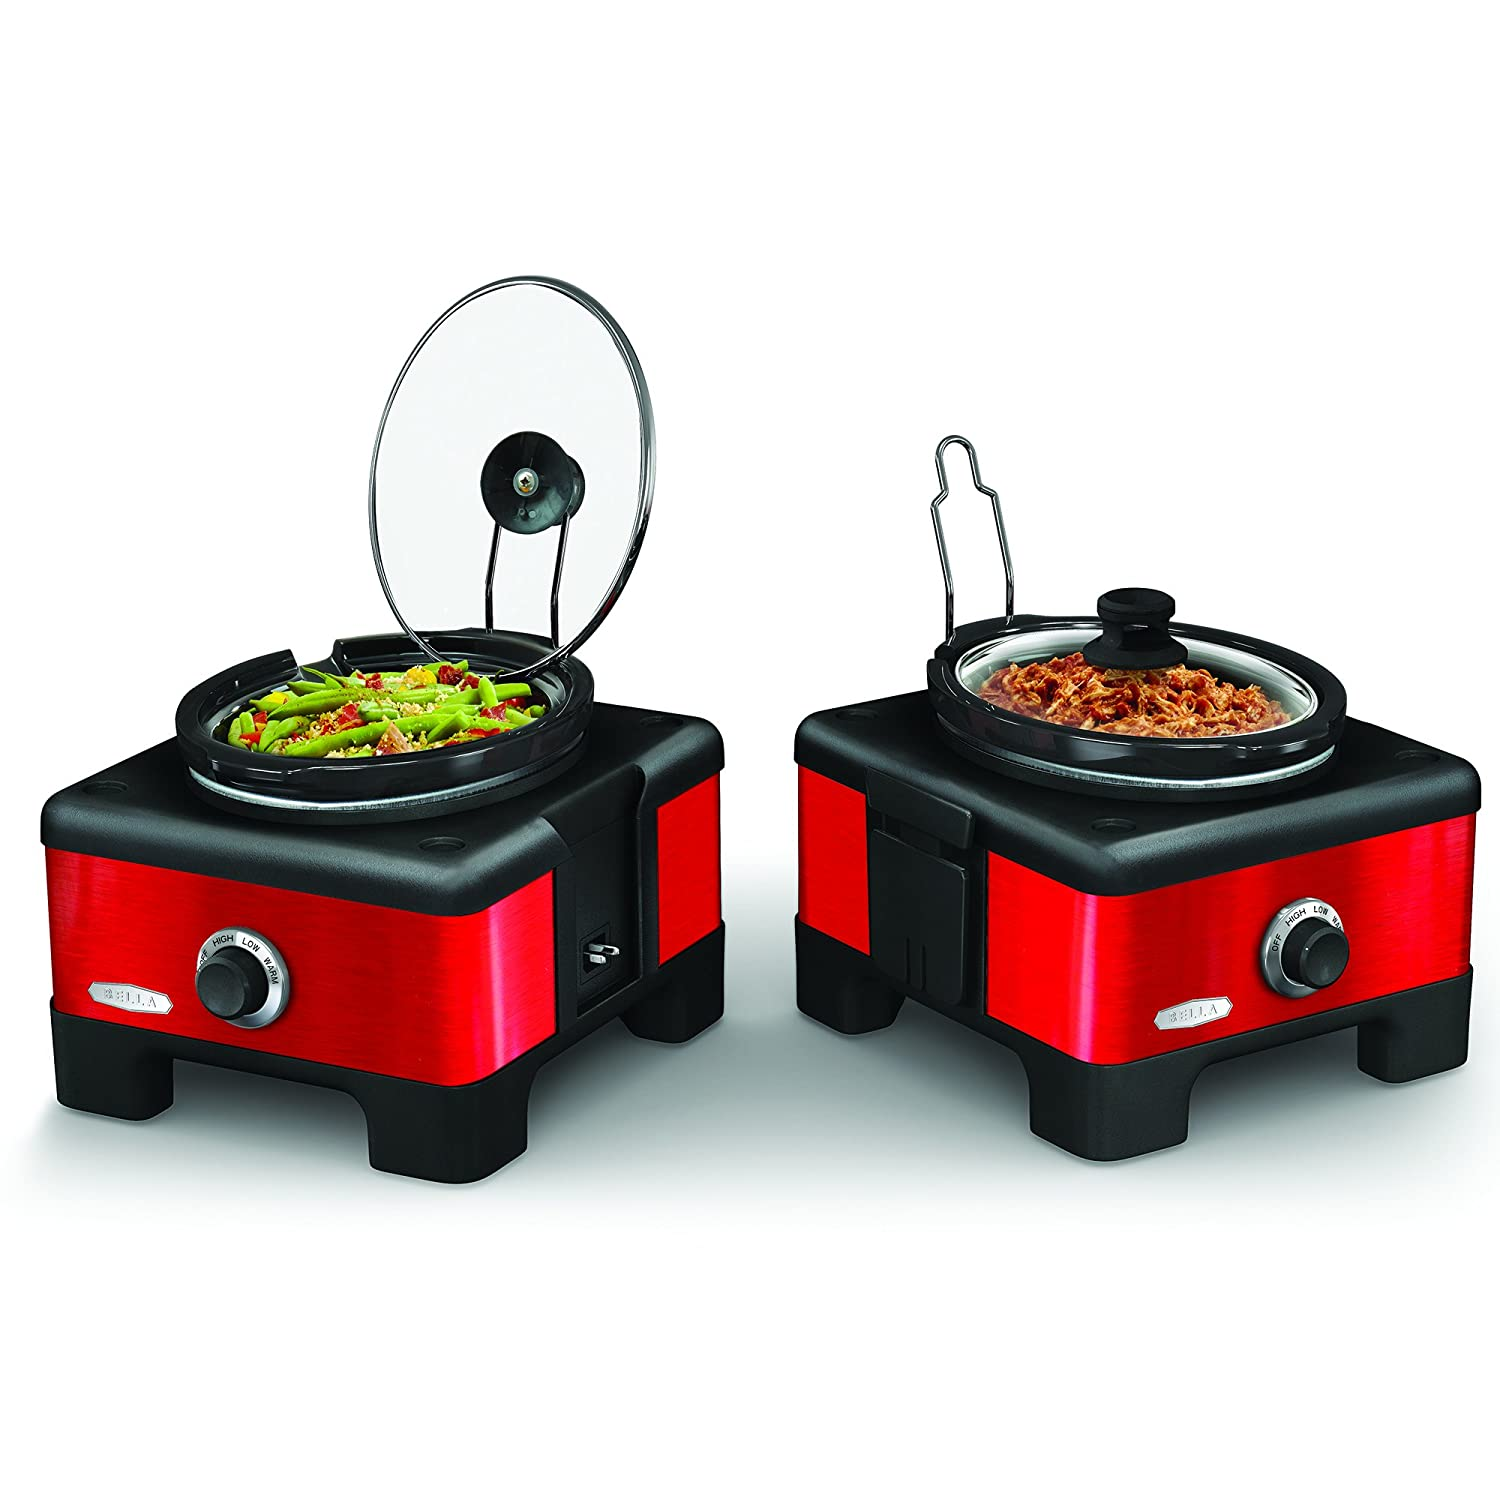 BELLA 13972 Connectable Entertaining Slow Cooker System, Red